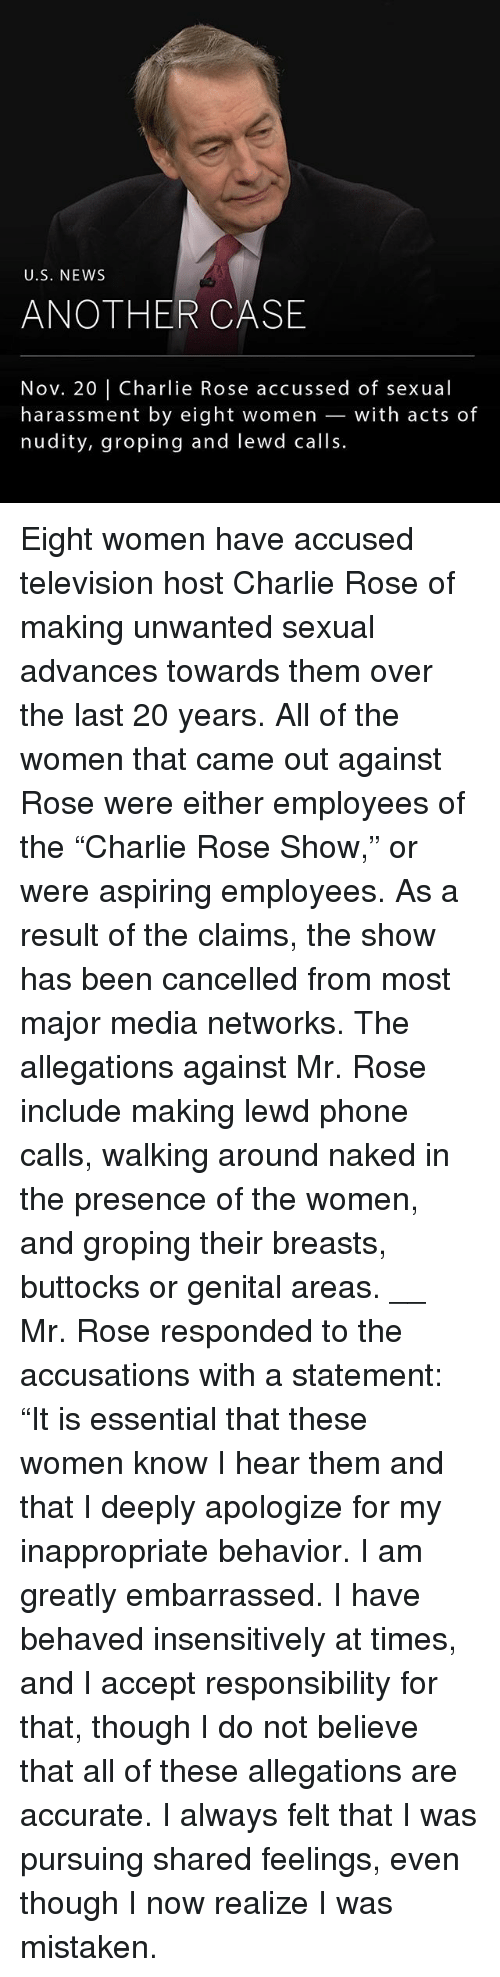 "Charlie, Memes, and News: U.S. NEWS  ANOTHER CASE  Nov. 20 | Charlie Rose accussed of sexual  harassment by eight women _with acts of  nudity, groping and lewd calls. Eight women have accused television host Charlie Rose of making unwanted sexual advances towards them over the last 20 years. All of the women that came out against Rose were either employees of the ""Charlie Rose Show,"" or were aspiring employees. As a result of the claims, the show has been cancelled from most major media networks. The allegations against Mr. Rose include making lewd phone calls, walking around naked in the presence of the women, and groping their breasts, buttocks or genital areas. __ Mr. Rose responded to the accusations with a statement: ""It is essential that these women know I hear them and that I deeply apologize for my inappropriate behavior. I am greatly embarrassed. I have behaved insensitively at times, and I accept responsibility for that, though I do not believe that all of these allegations are accurate. I always felt that I was pursuing shared feelings, even though I now realize I was mistaken."